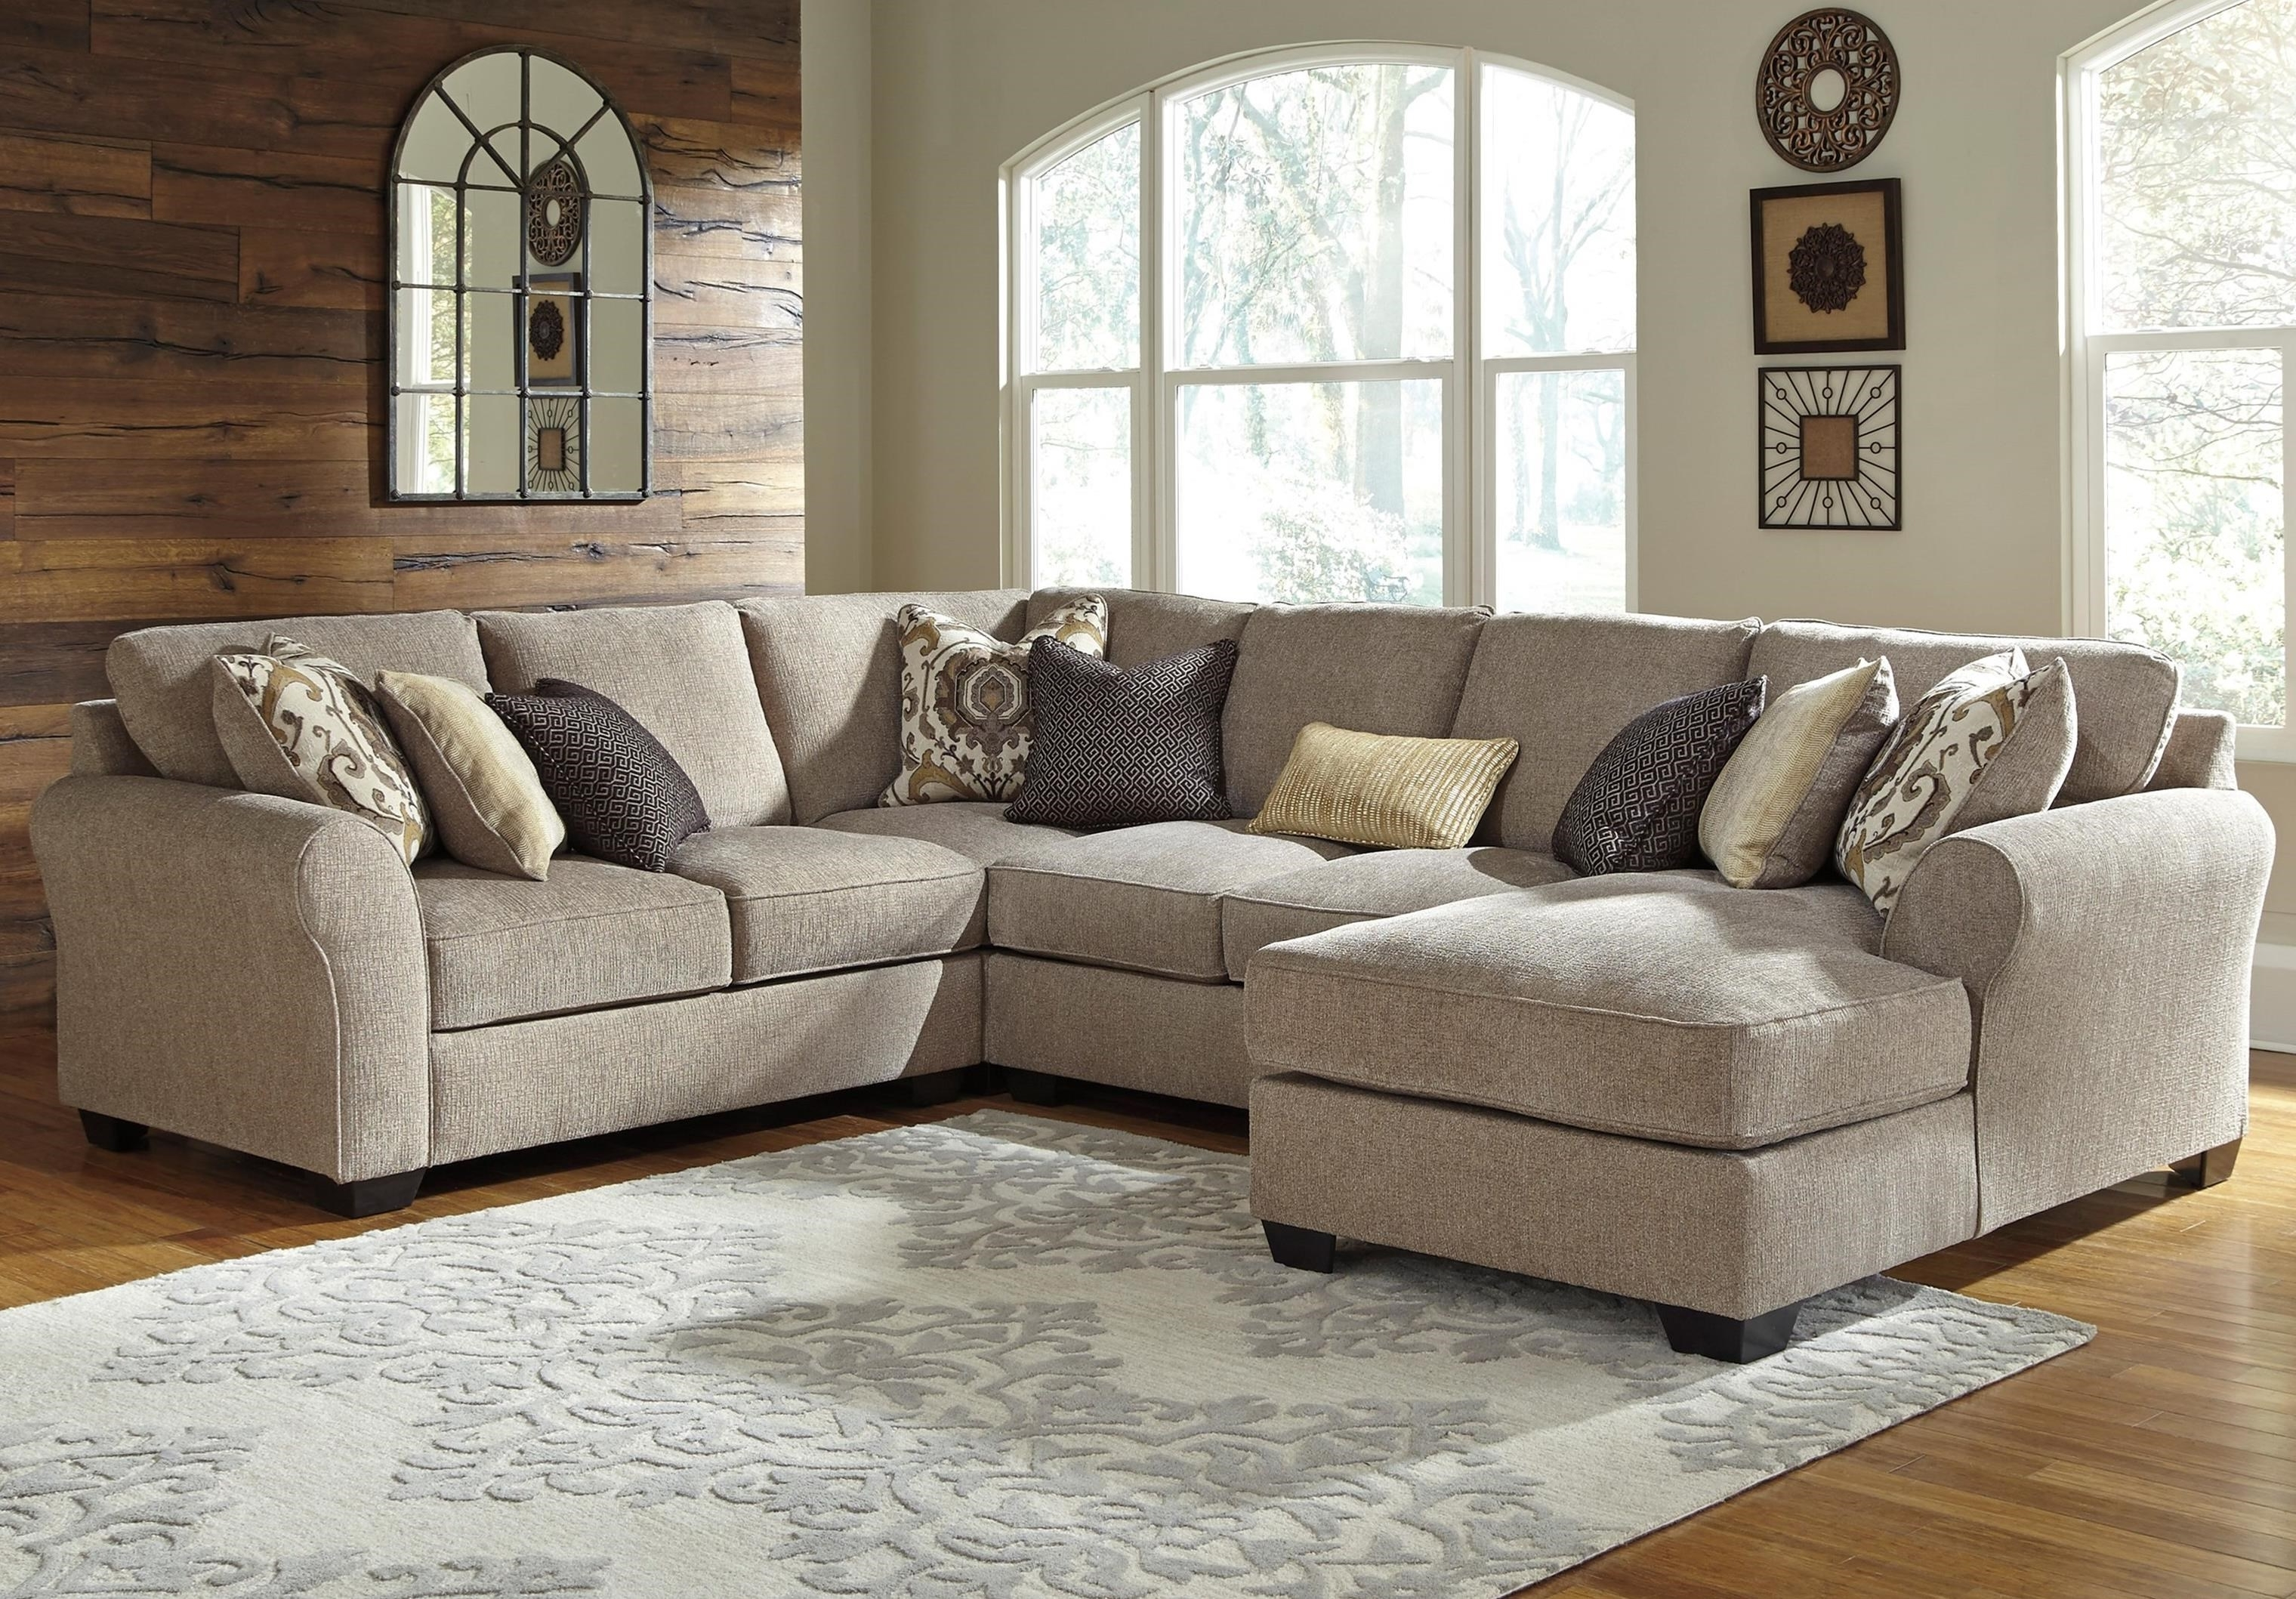 Fashionable Benchcraft Pantomine 4 Piece Sectional With Left Chaise (View 5 of 15)